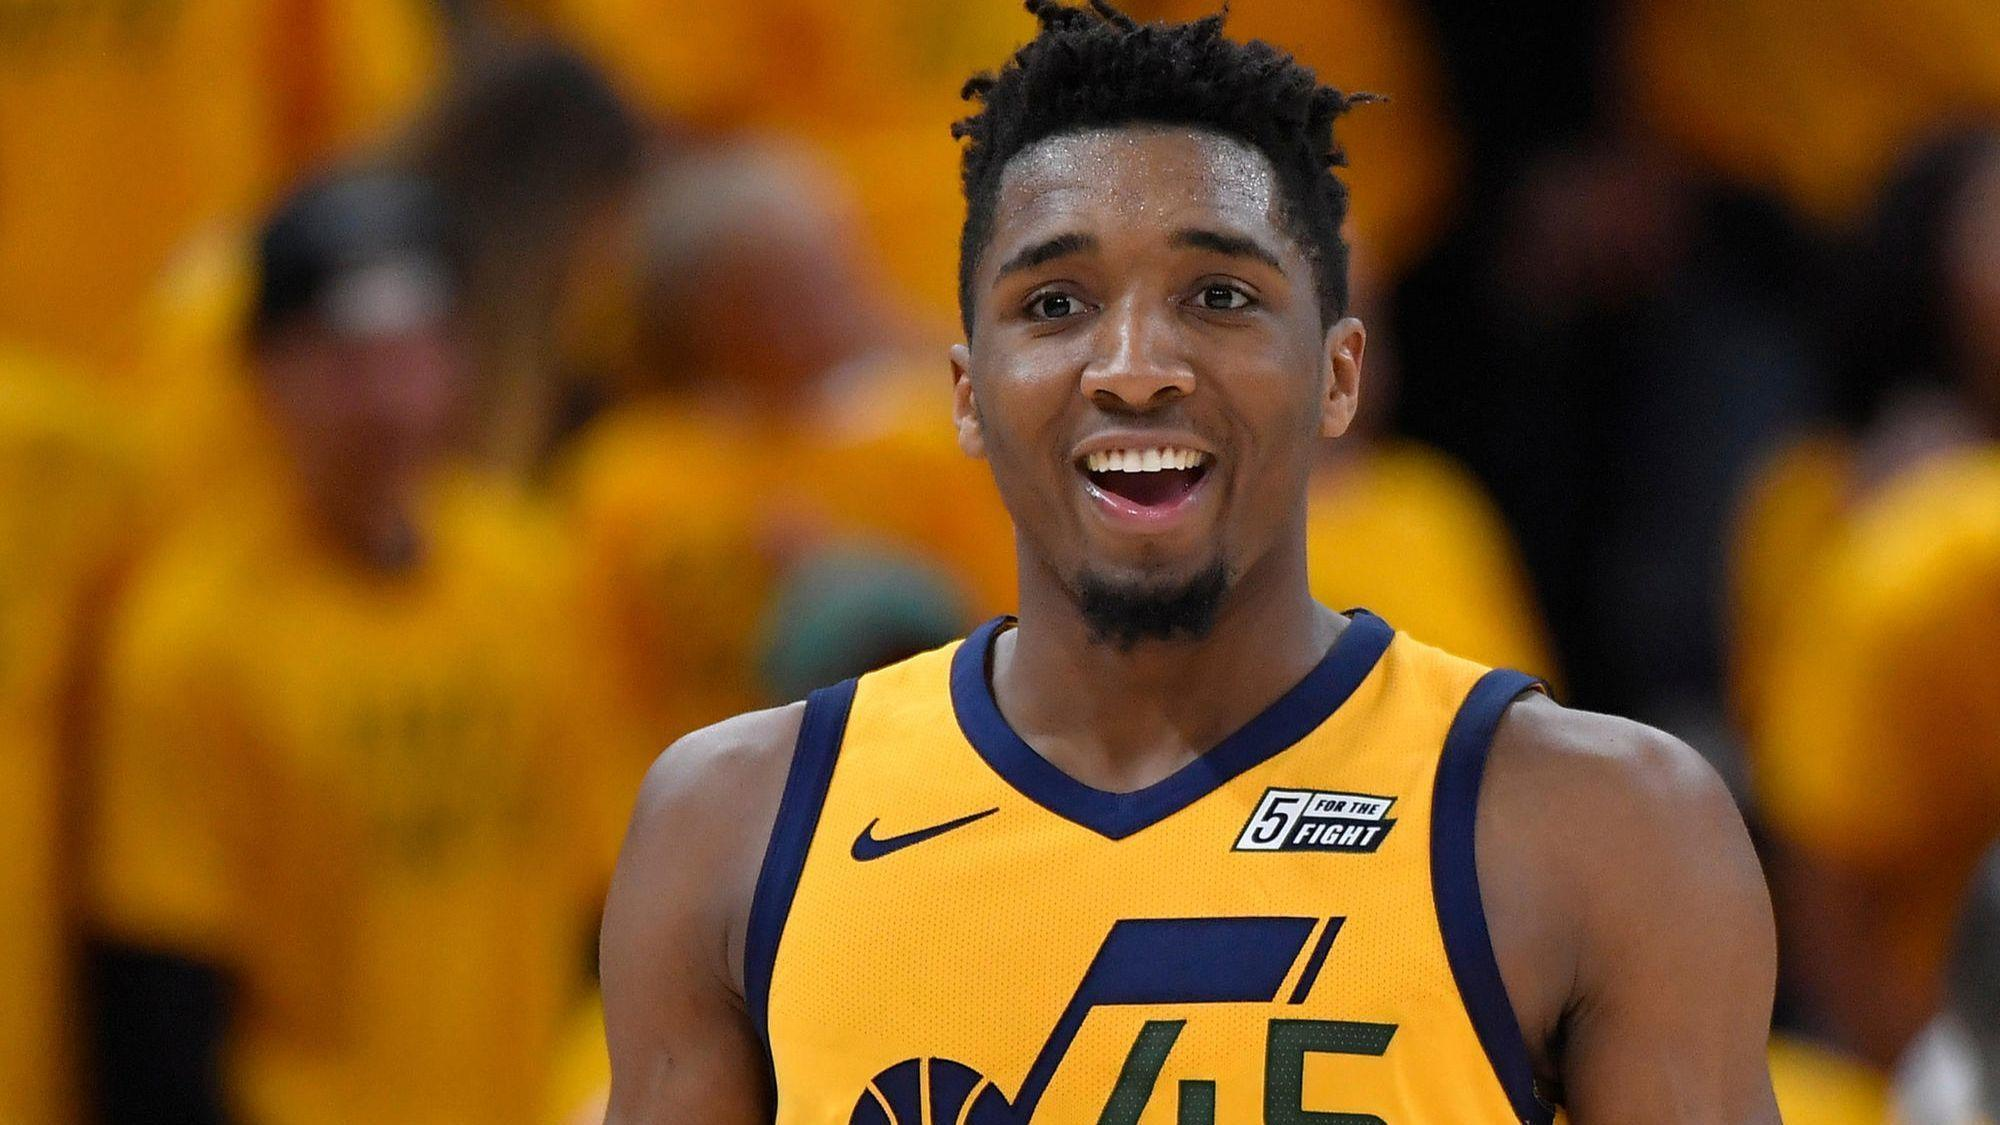 donavan mitchell golden state warriors rakuten sponsorship